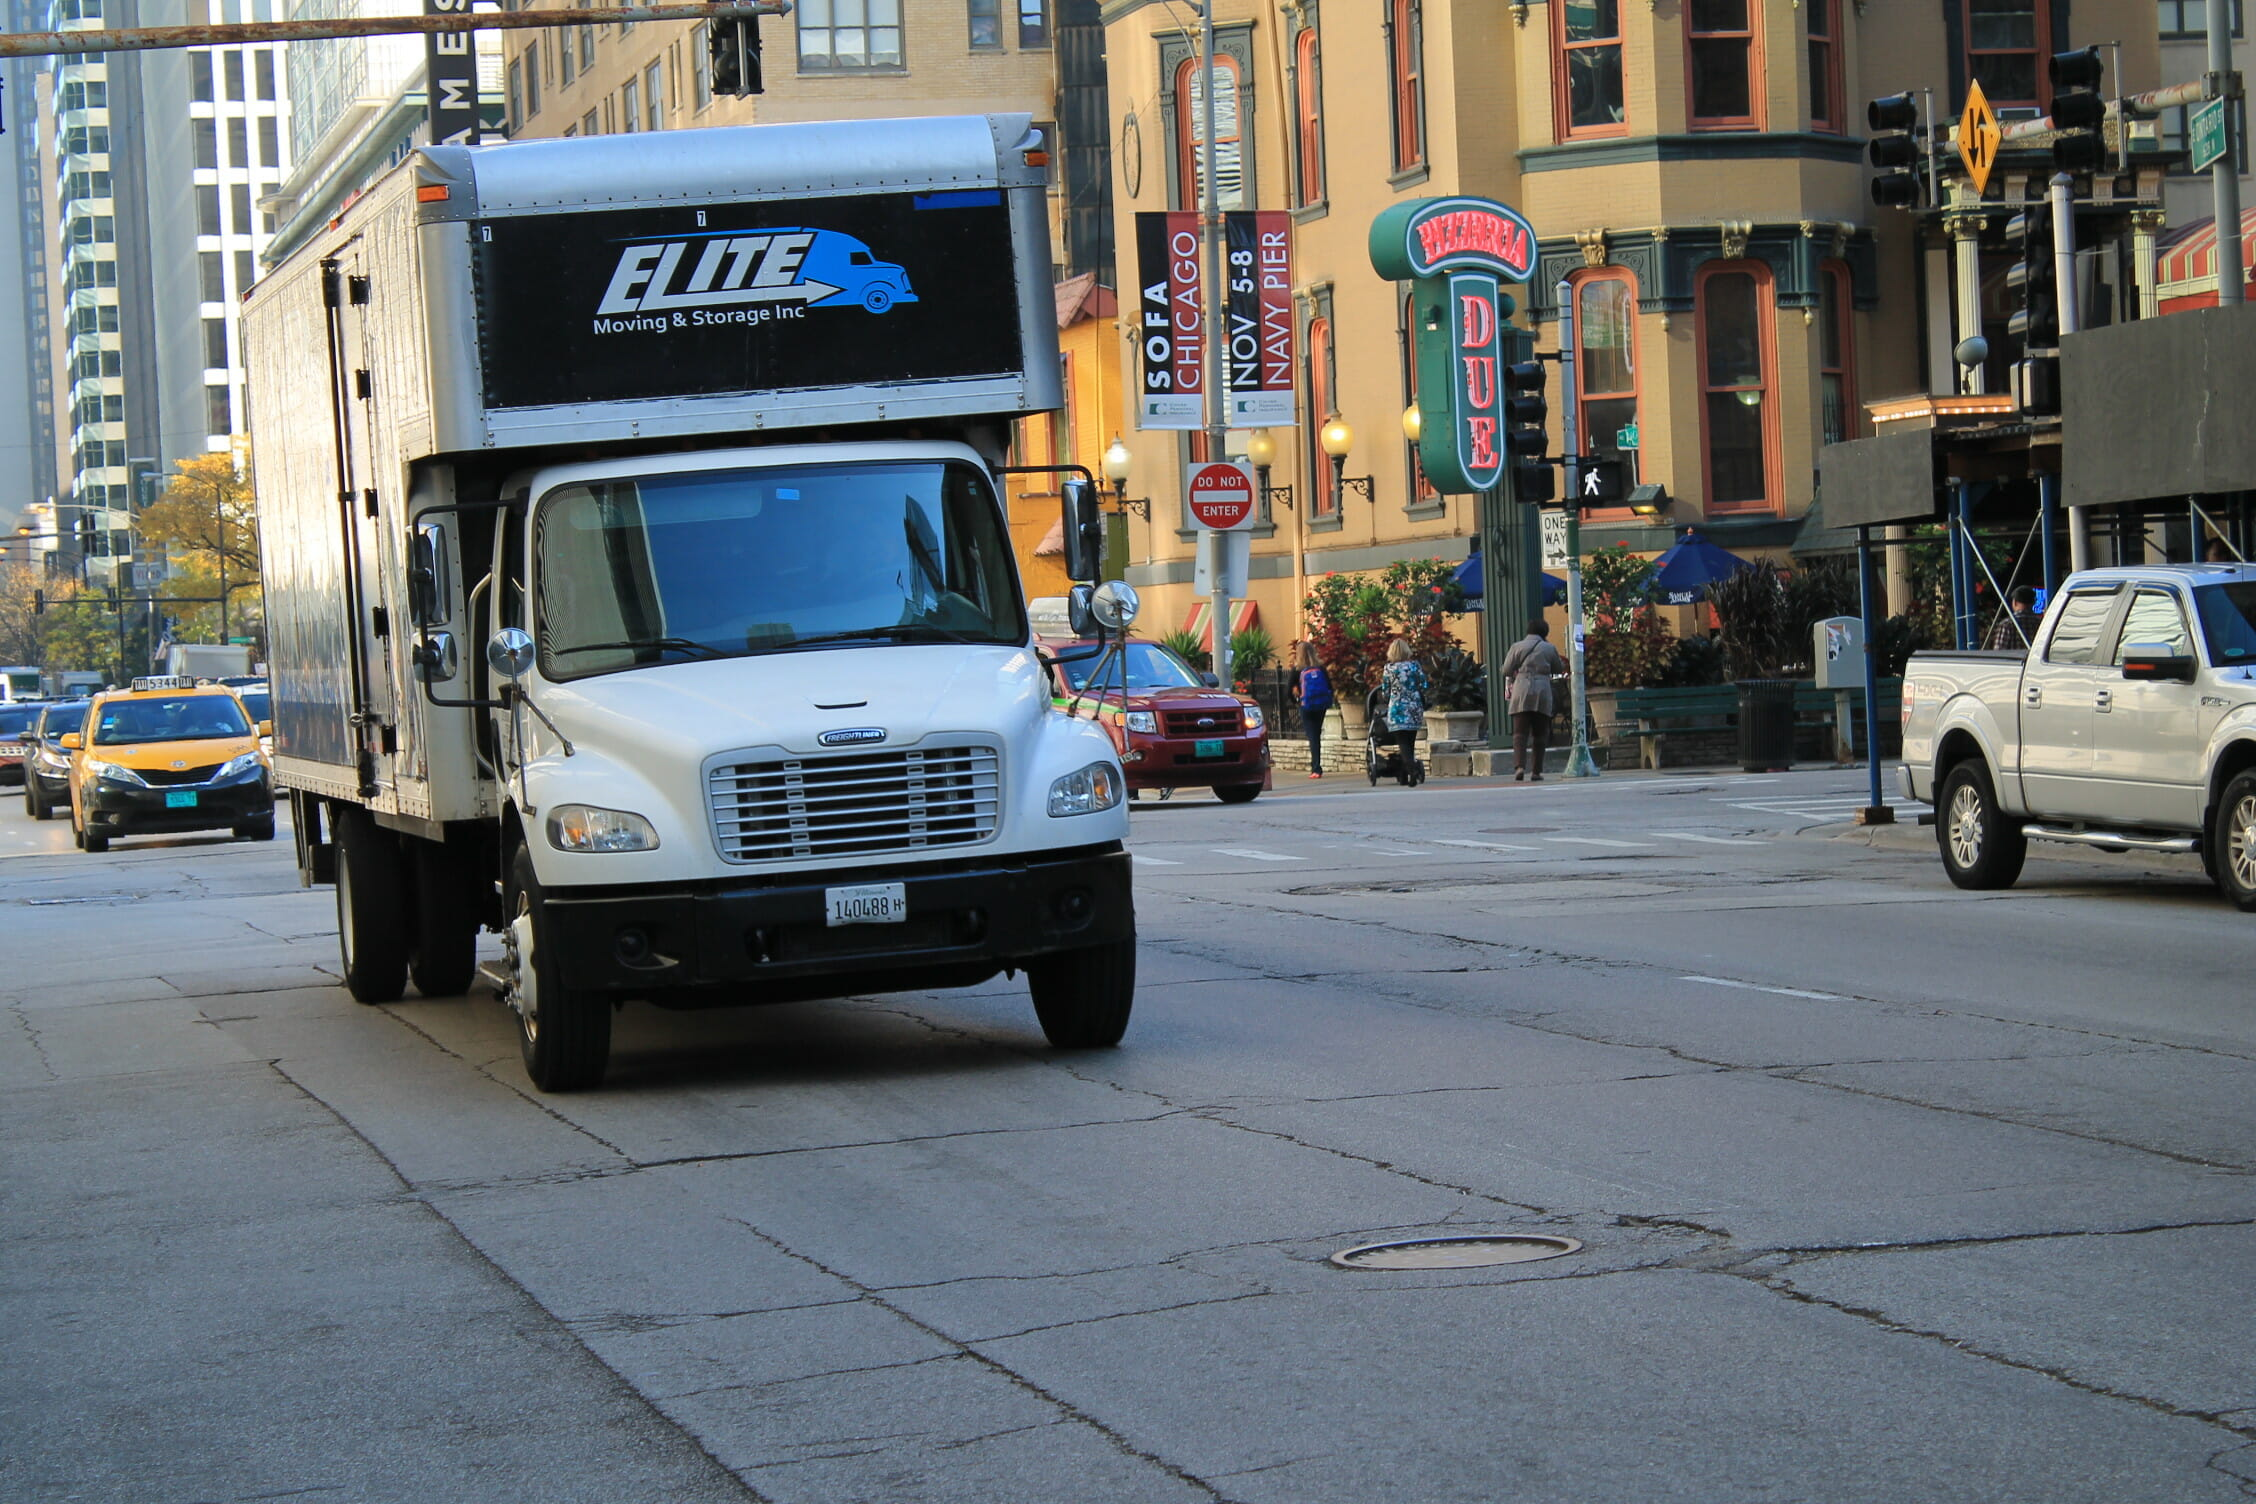 Elite Movers in River North Chicago